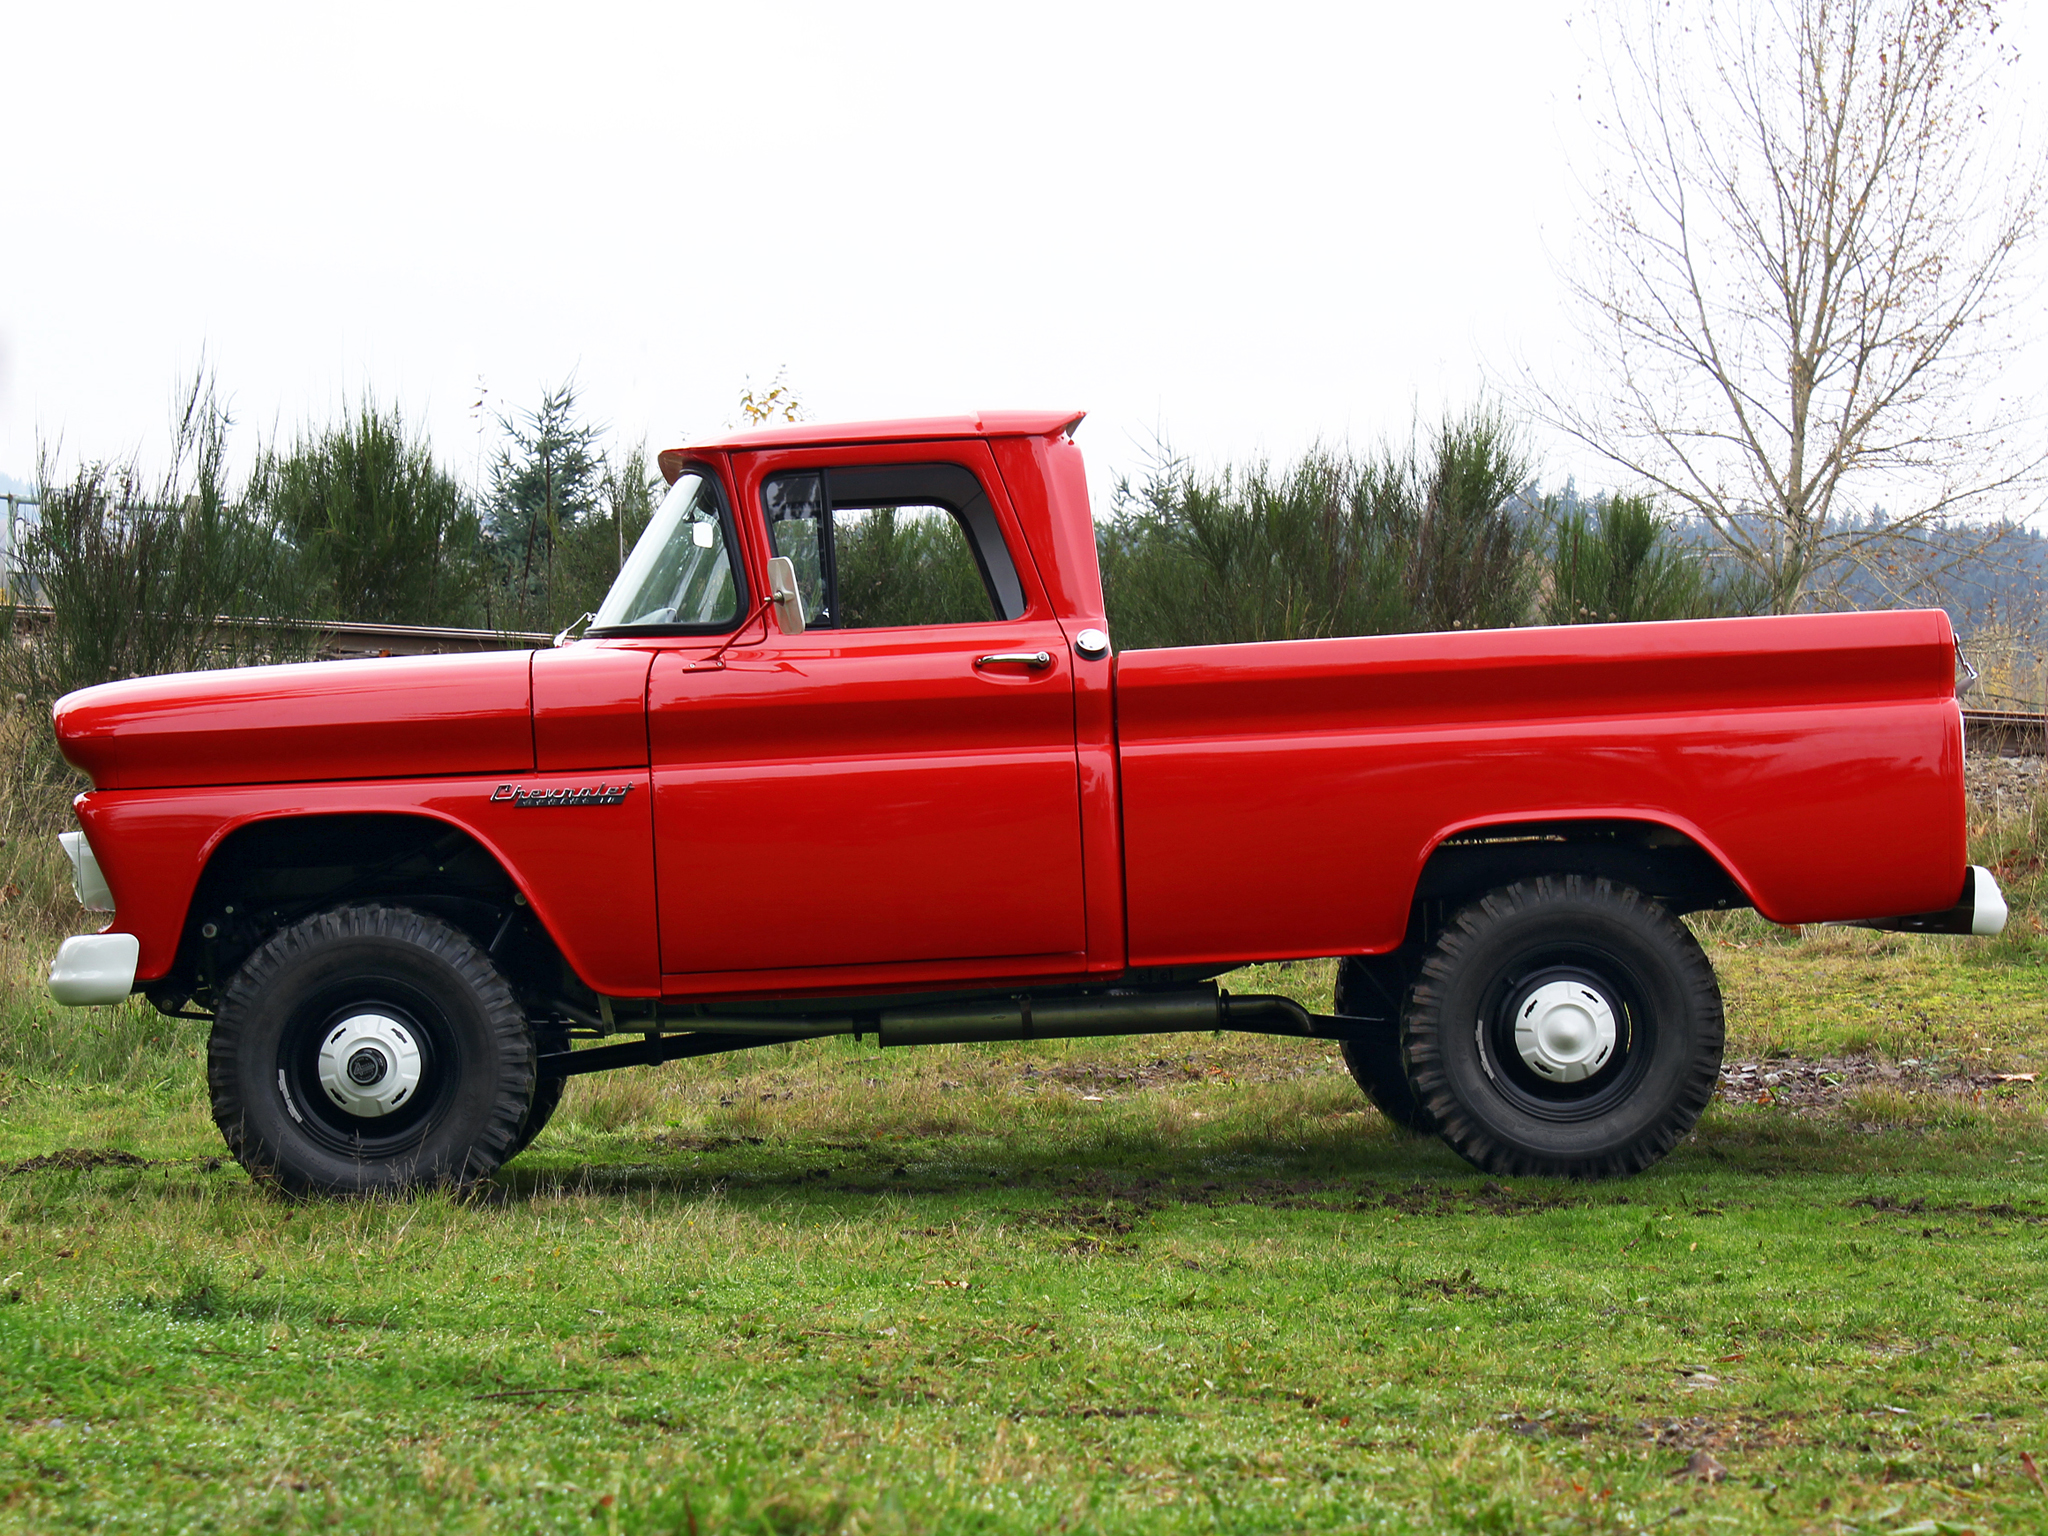 10 Fleetside Pickup Truck K14 4x4 classic f wallpaper background 2048x1536